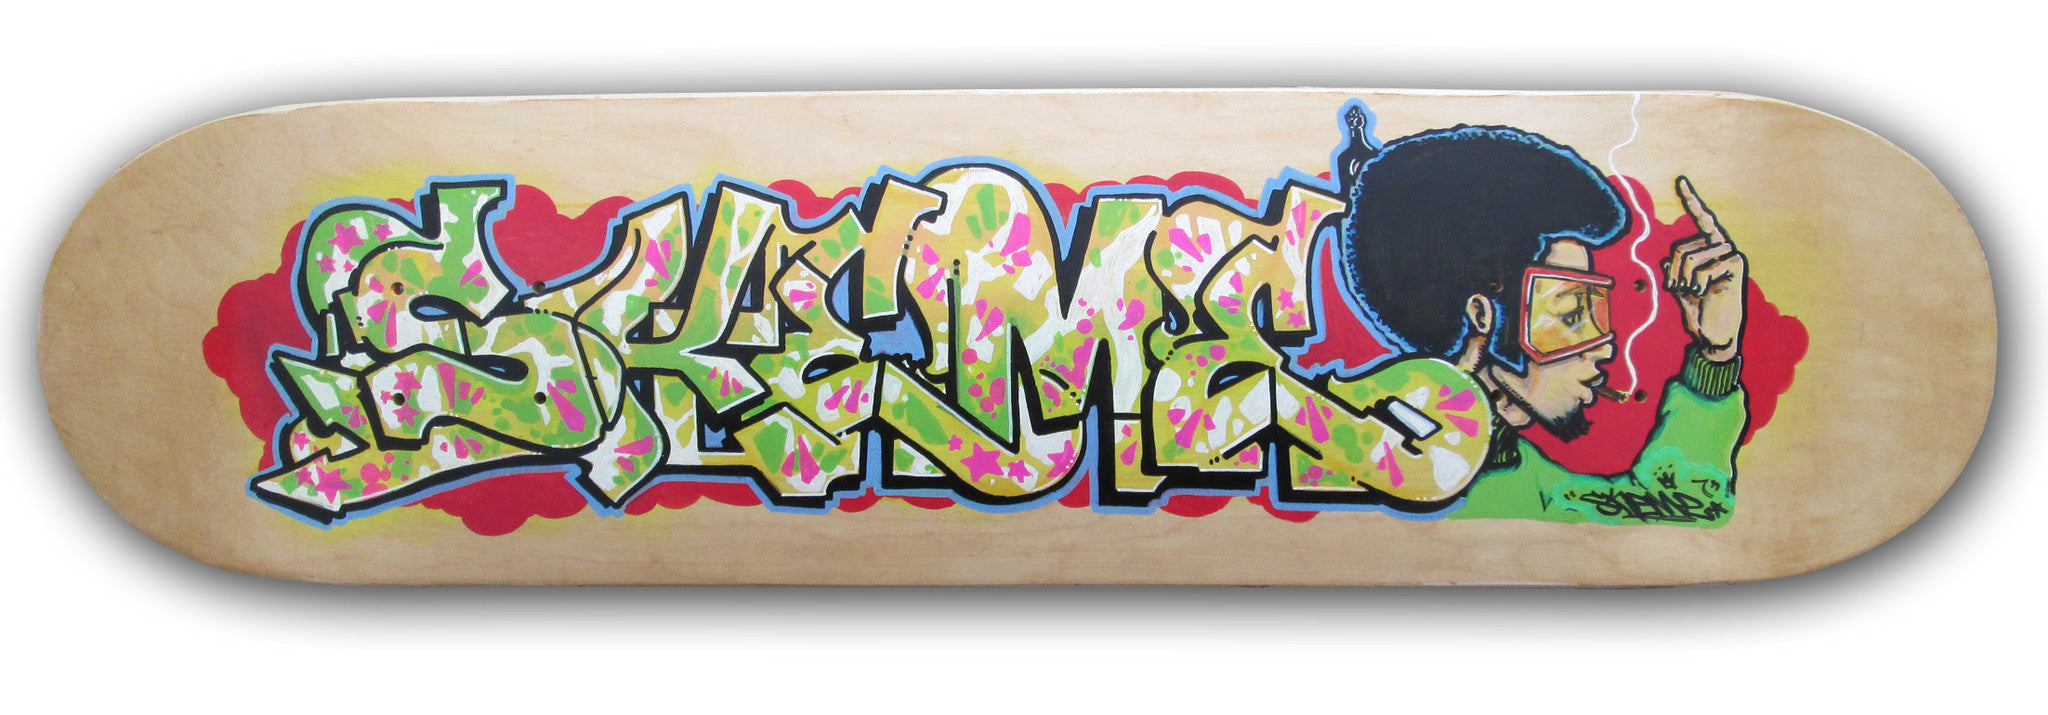 "SKEME - ""Truck You"" Deck"